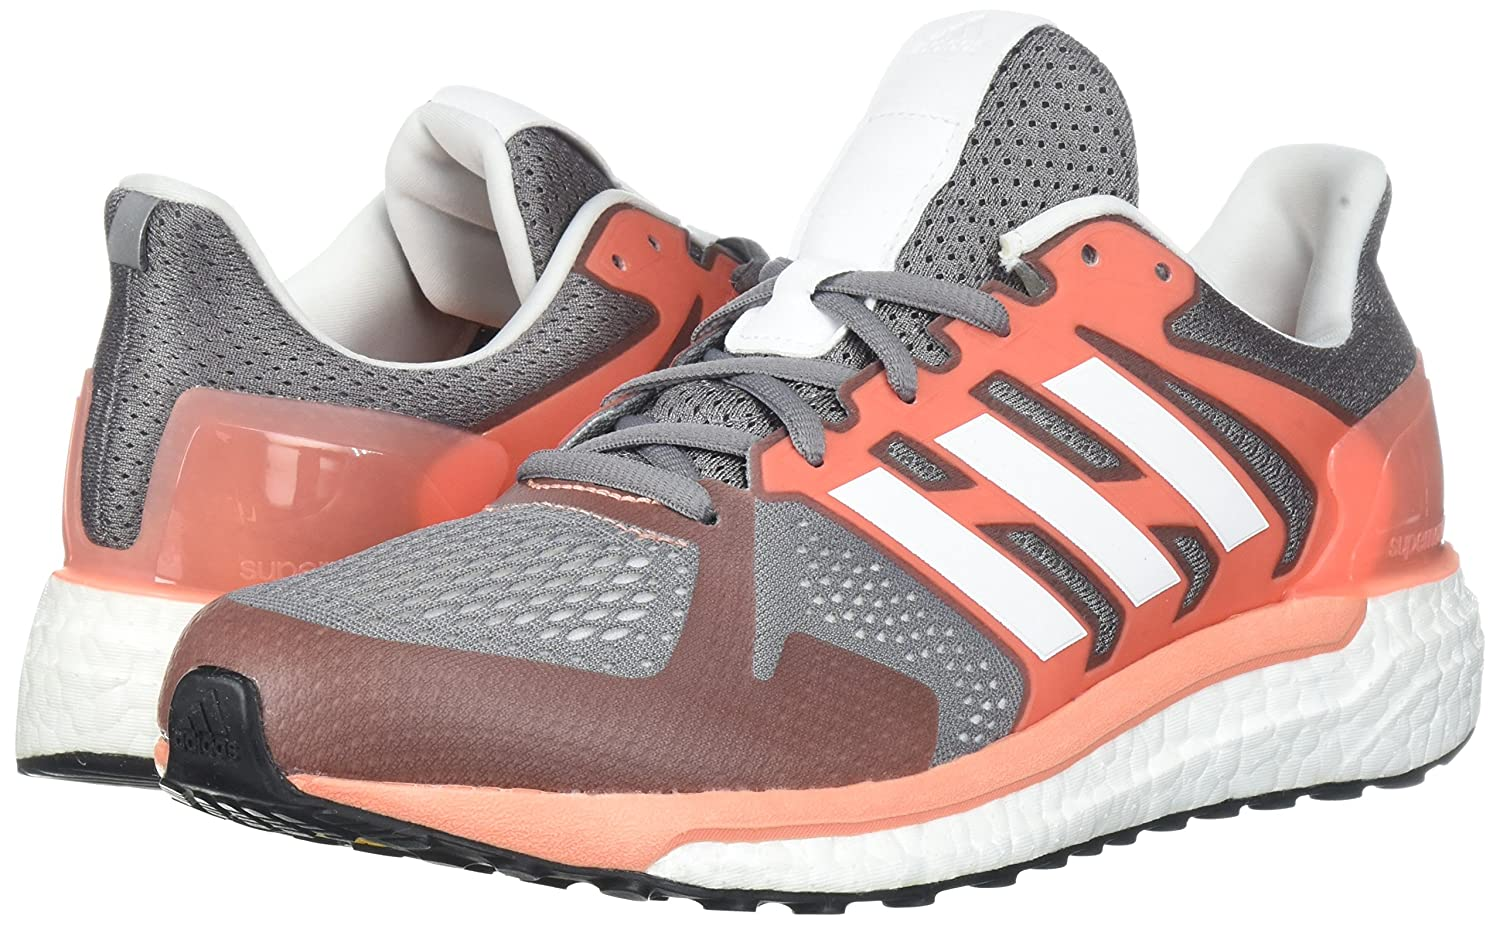 Gentlemen/Ladies adidas Women's Supernova ST ST ST  Running Shoes Ideal gift for all occasions a variety of Exquisite (processing) processing VH17744 25a1e3